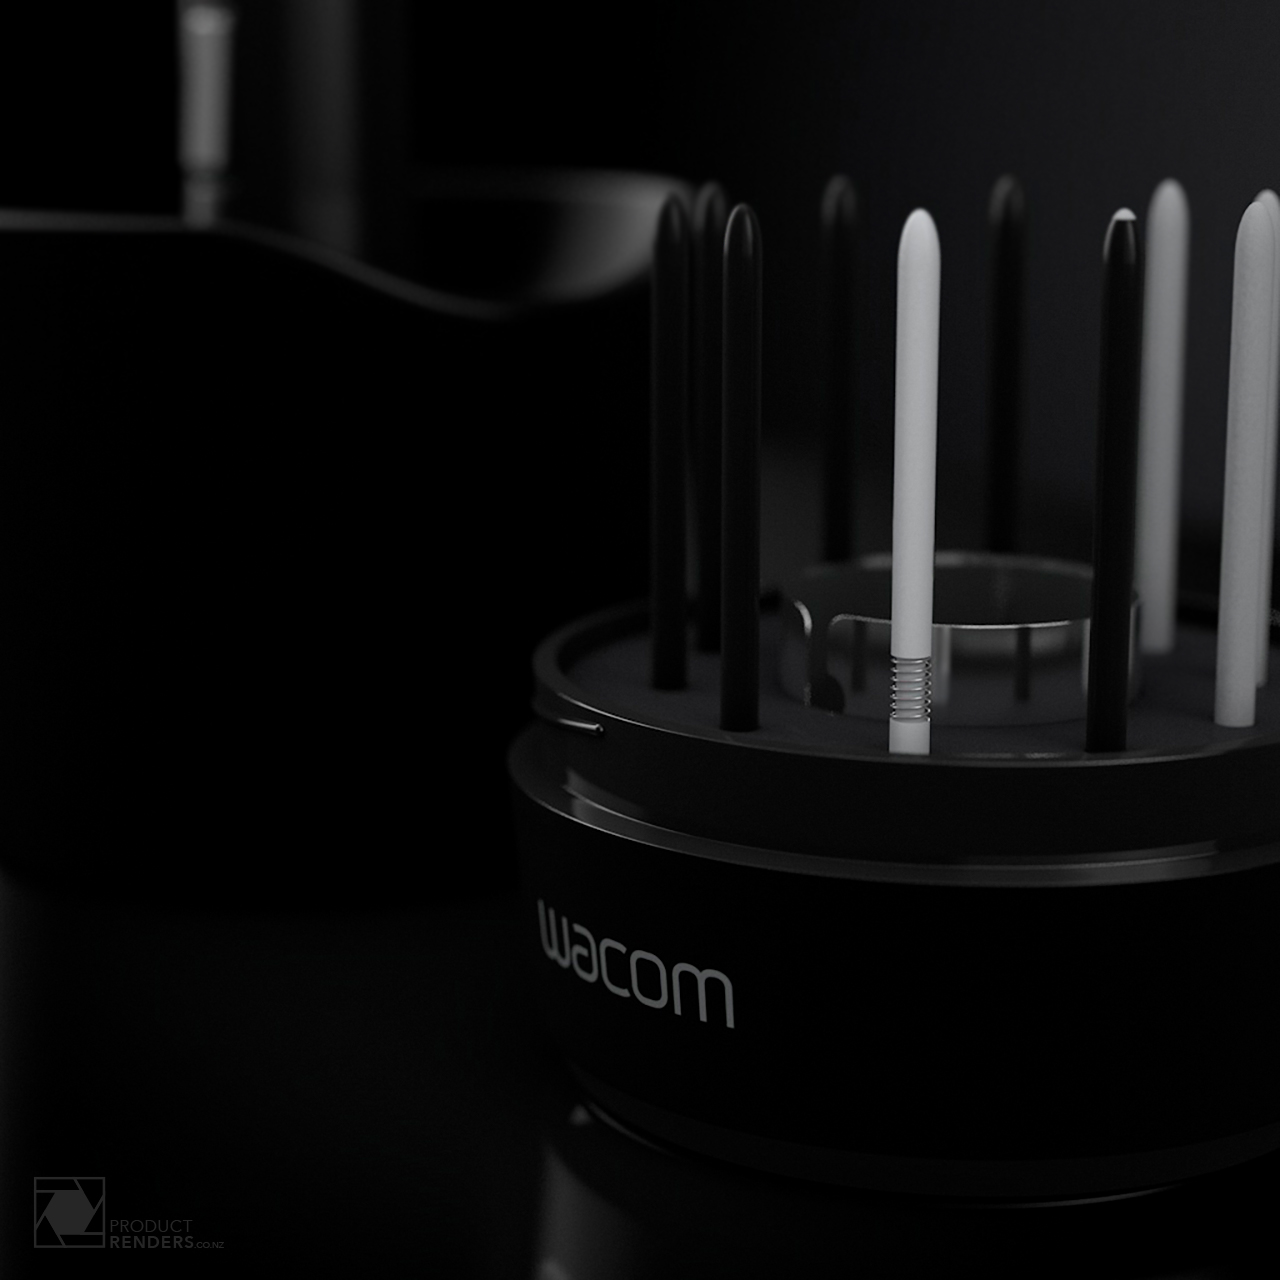 3D render of a Wacom 4 pen stand with spare nibs and nib removal tool